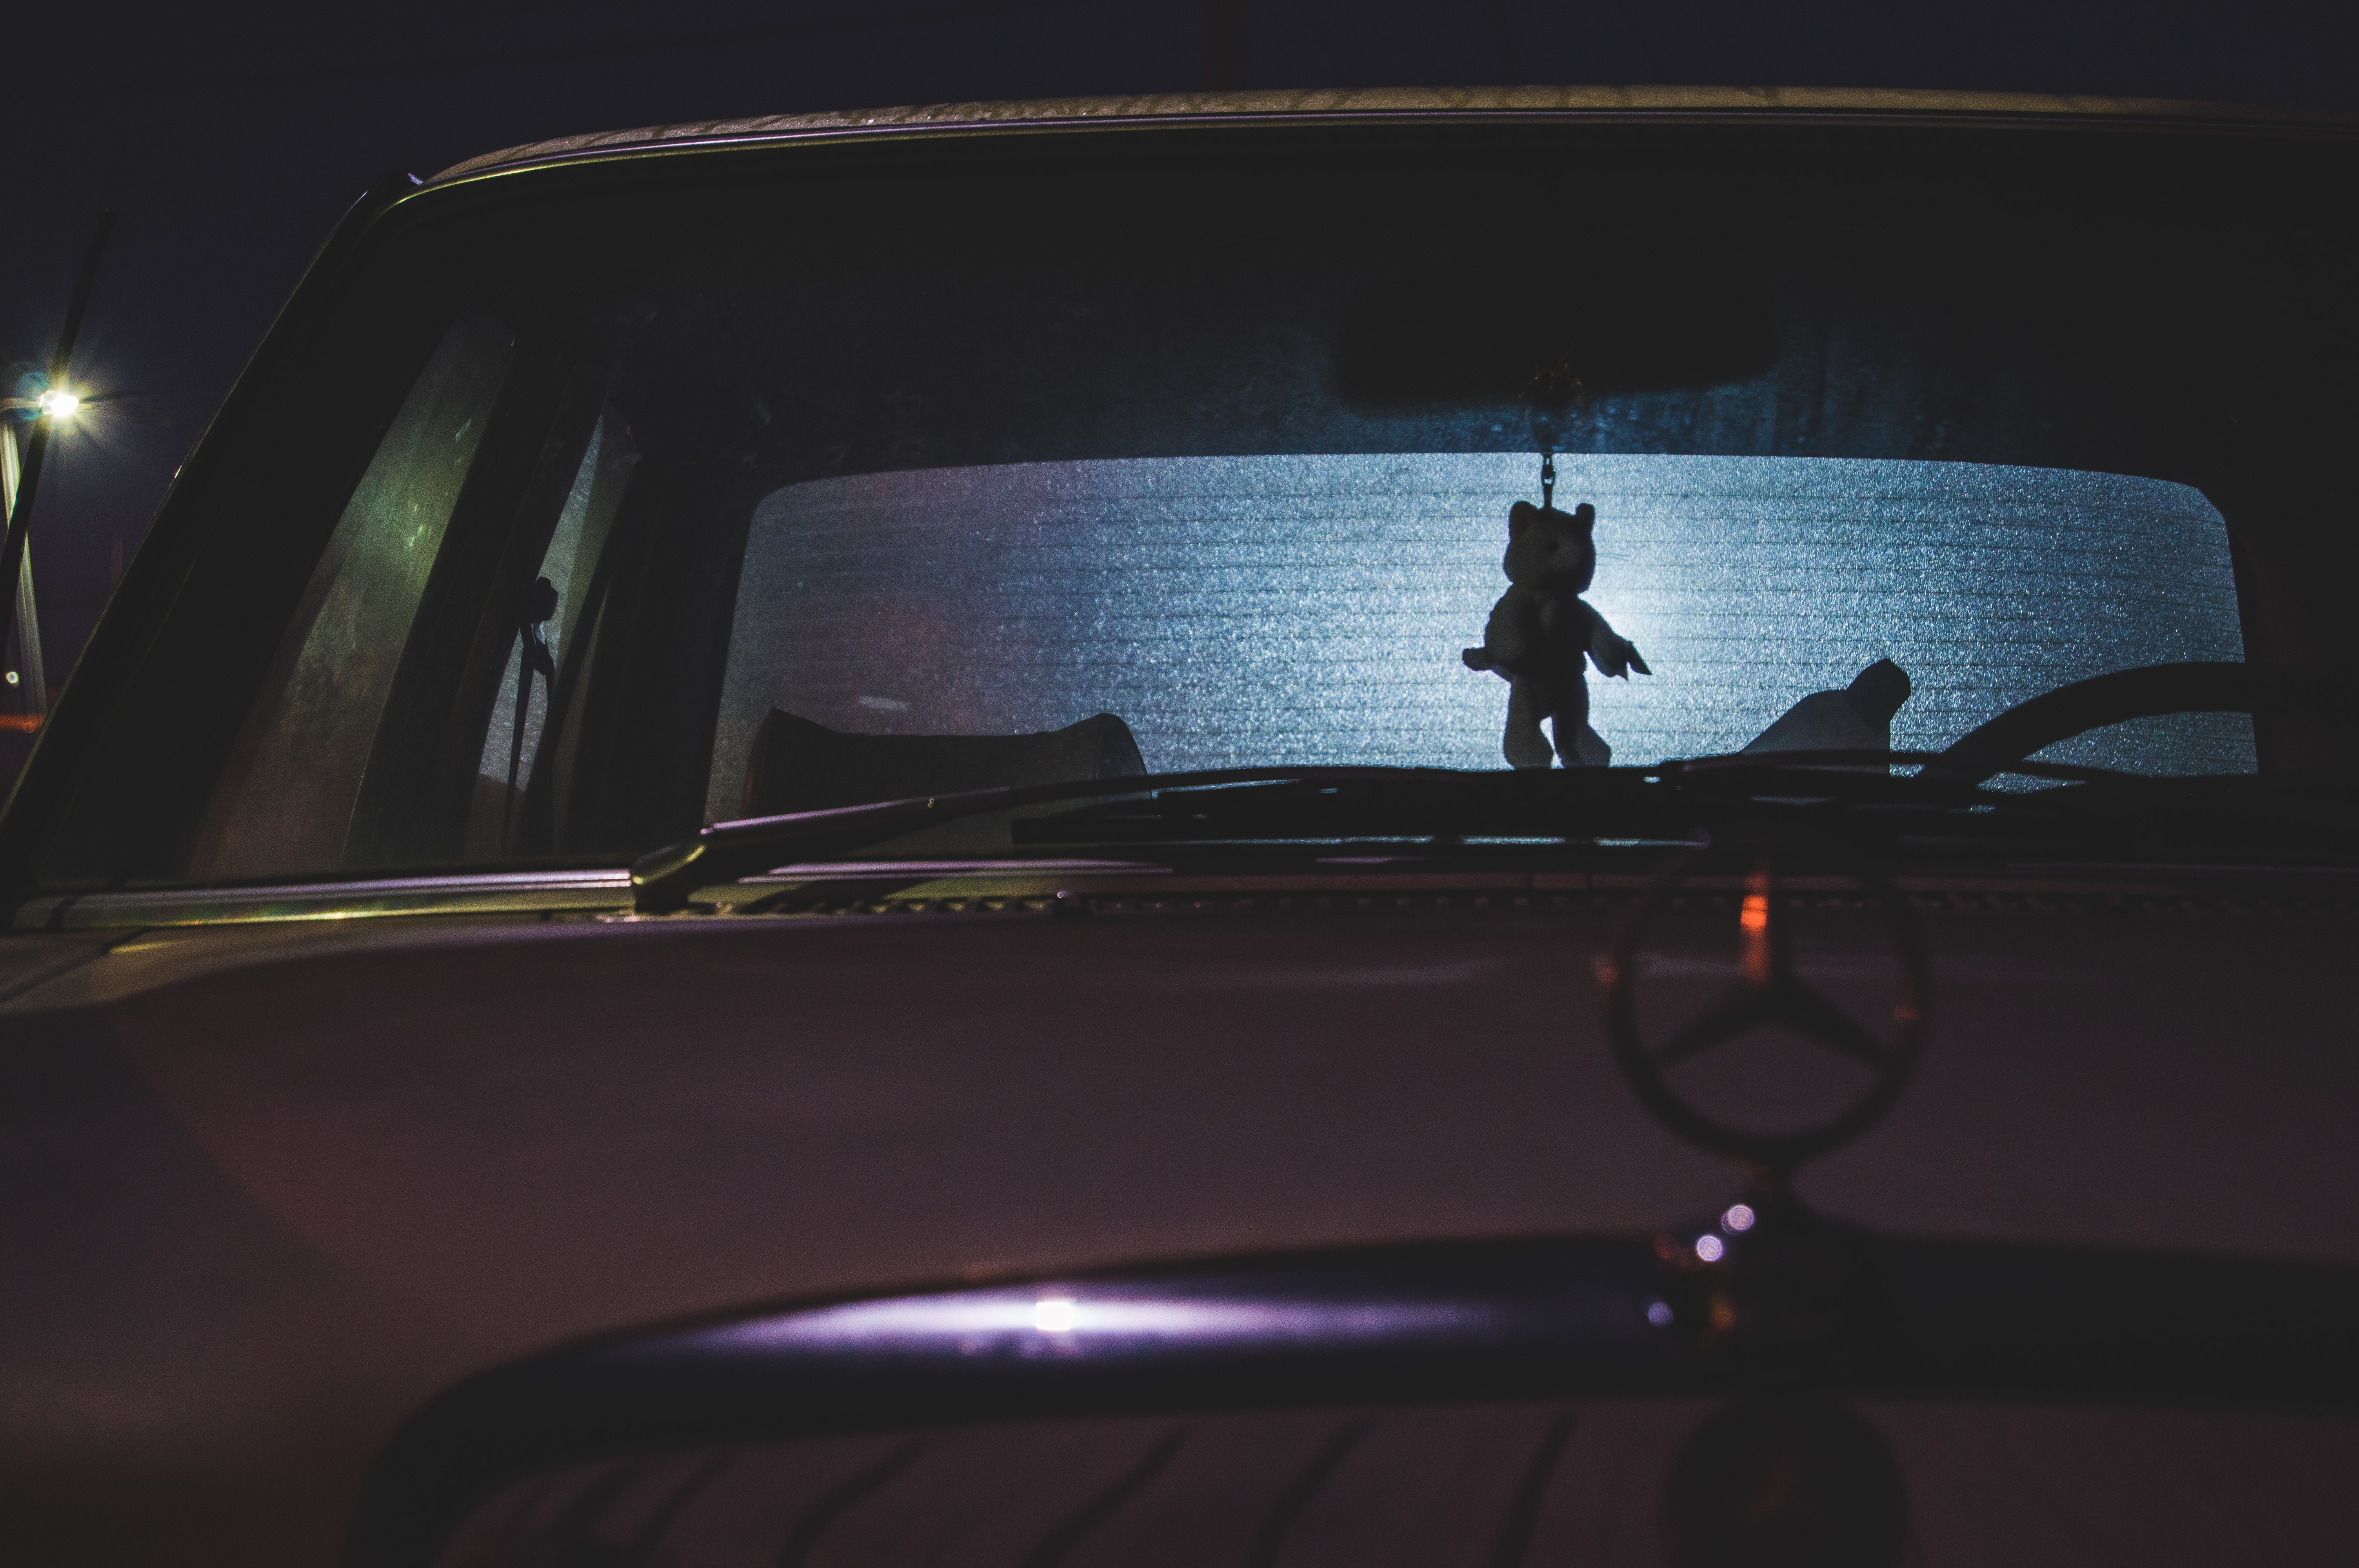 A vintage Mercedes car with a small figurine hanging from the rear-view mirror seen through the windshield.